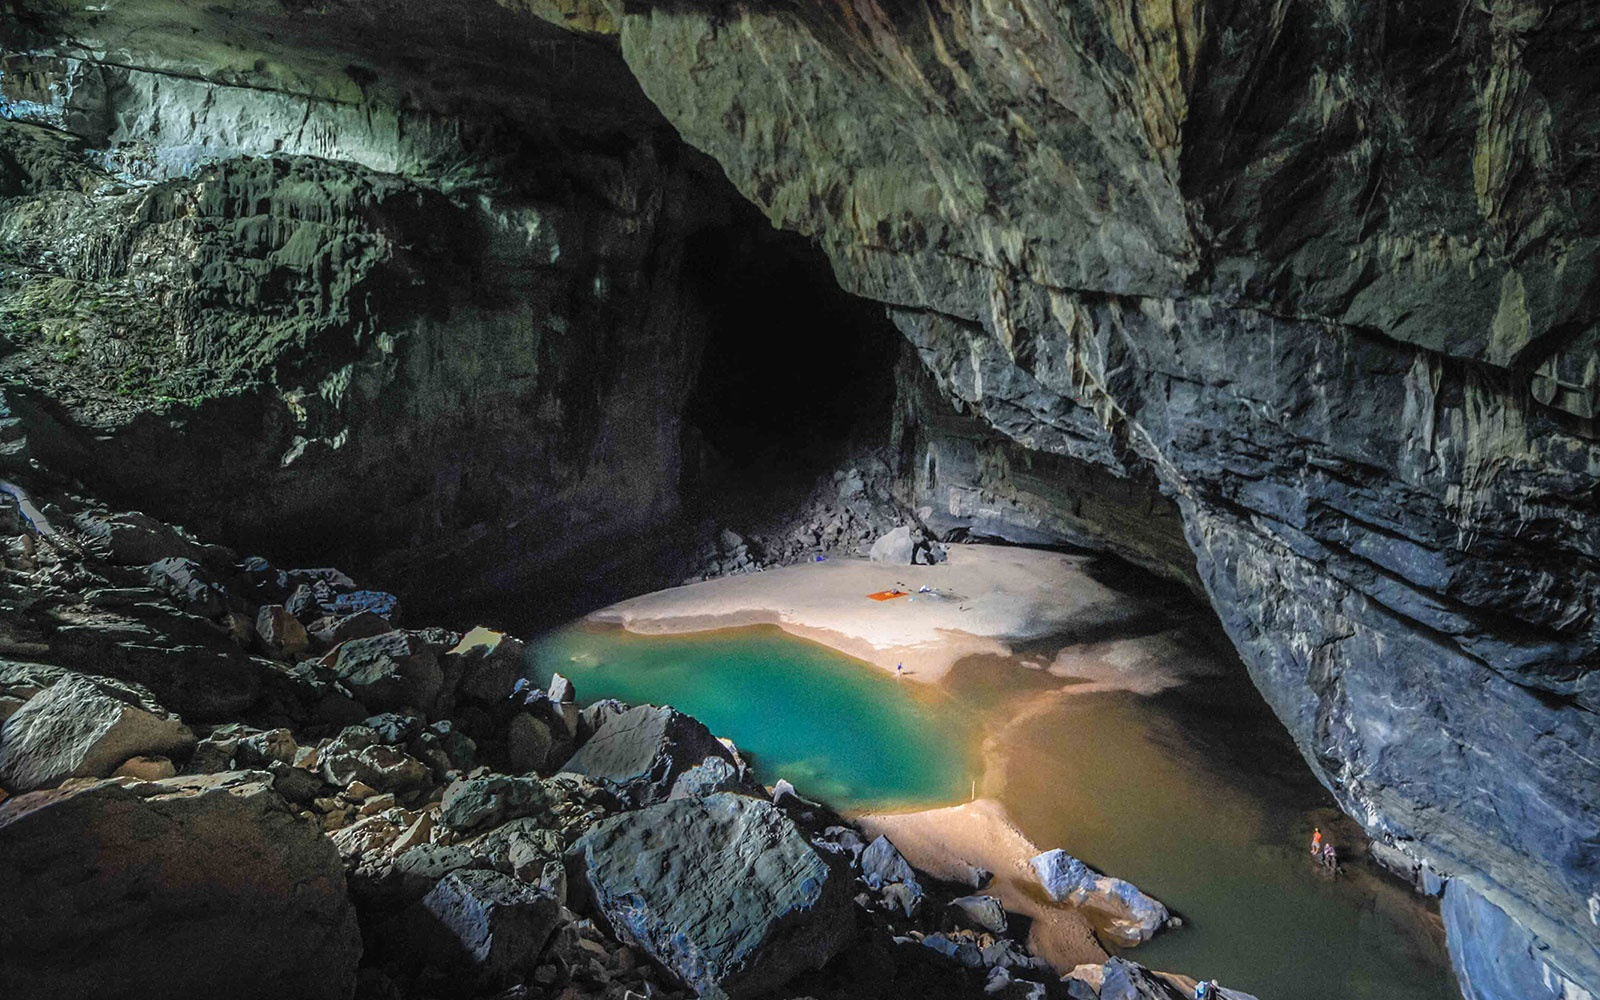 Before reaching Son Doong itself, the trek passes through the colossal Hang En cave. After wading though a river and then climbing a massive hill of boulders, trekkers are met with this view. On the beach below a fire burns and tents are set up for the first night of camping.